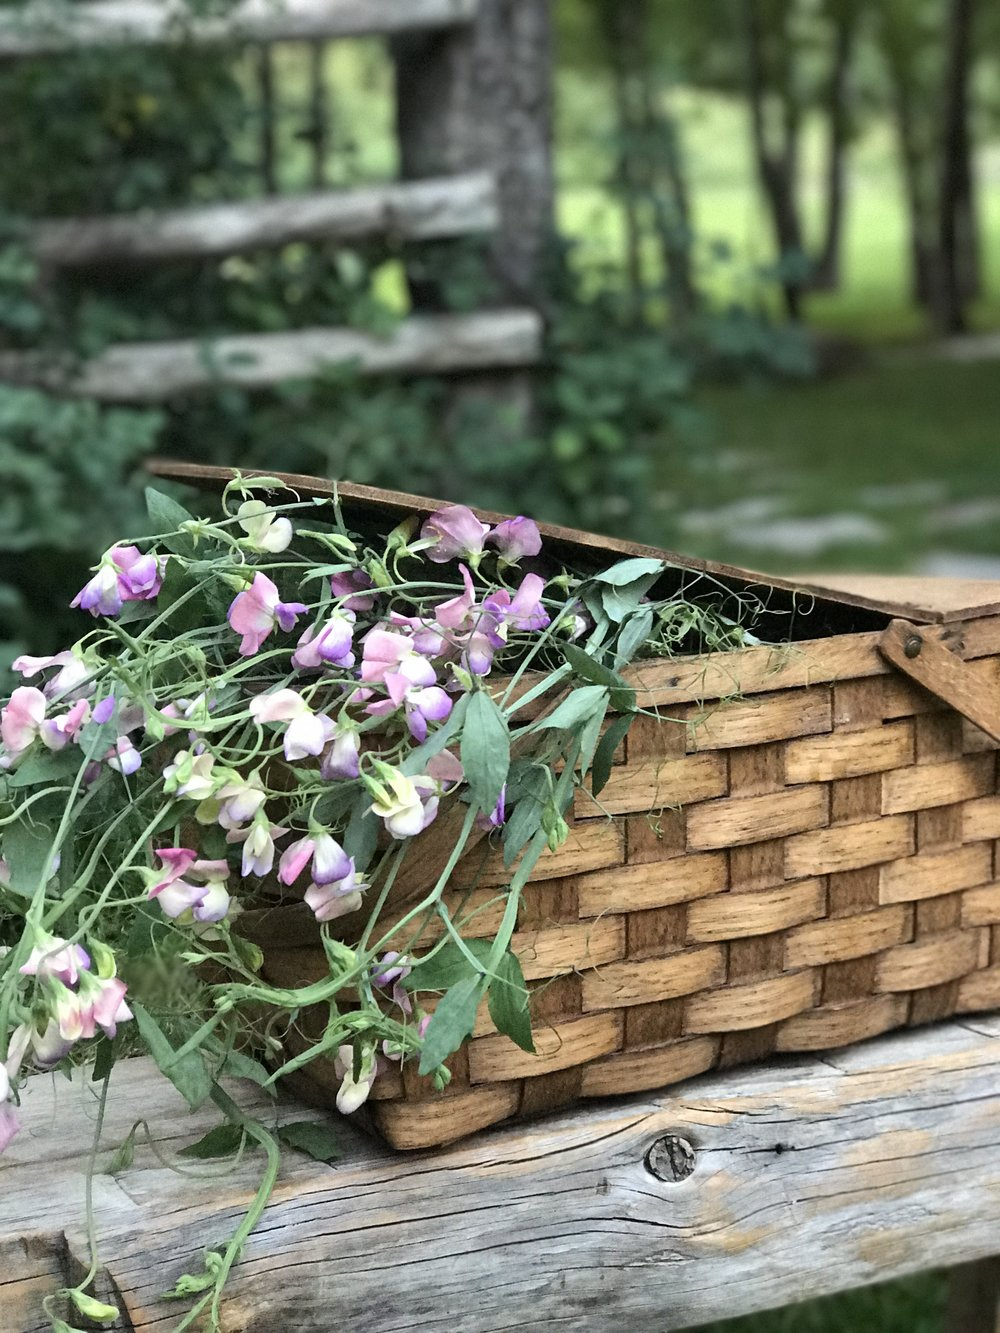 Sweet peas in a picnic basket